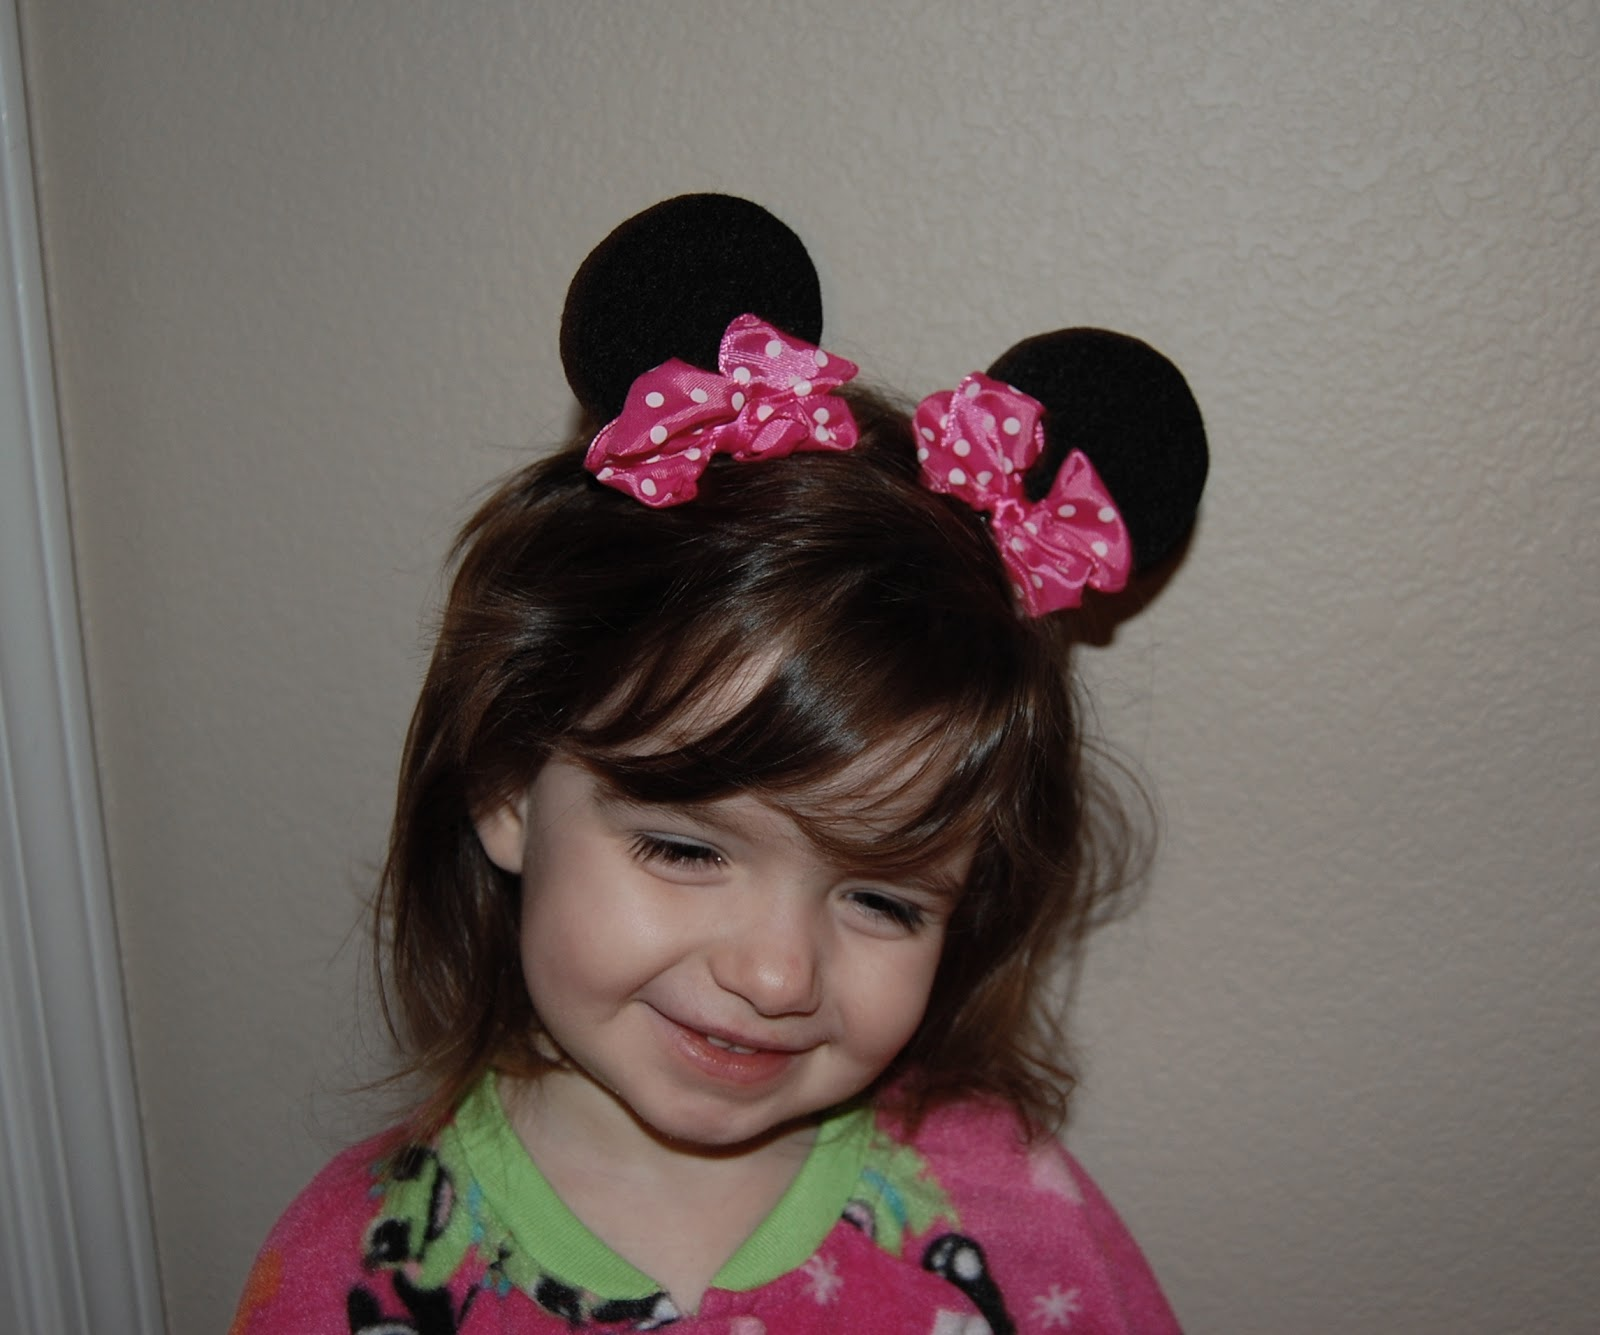 Of course we are not going with out making some fun hair bows and accessories. Take a look at these adorable Minnie Mouse ear hair clips that I made.